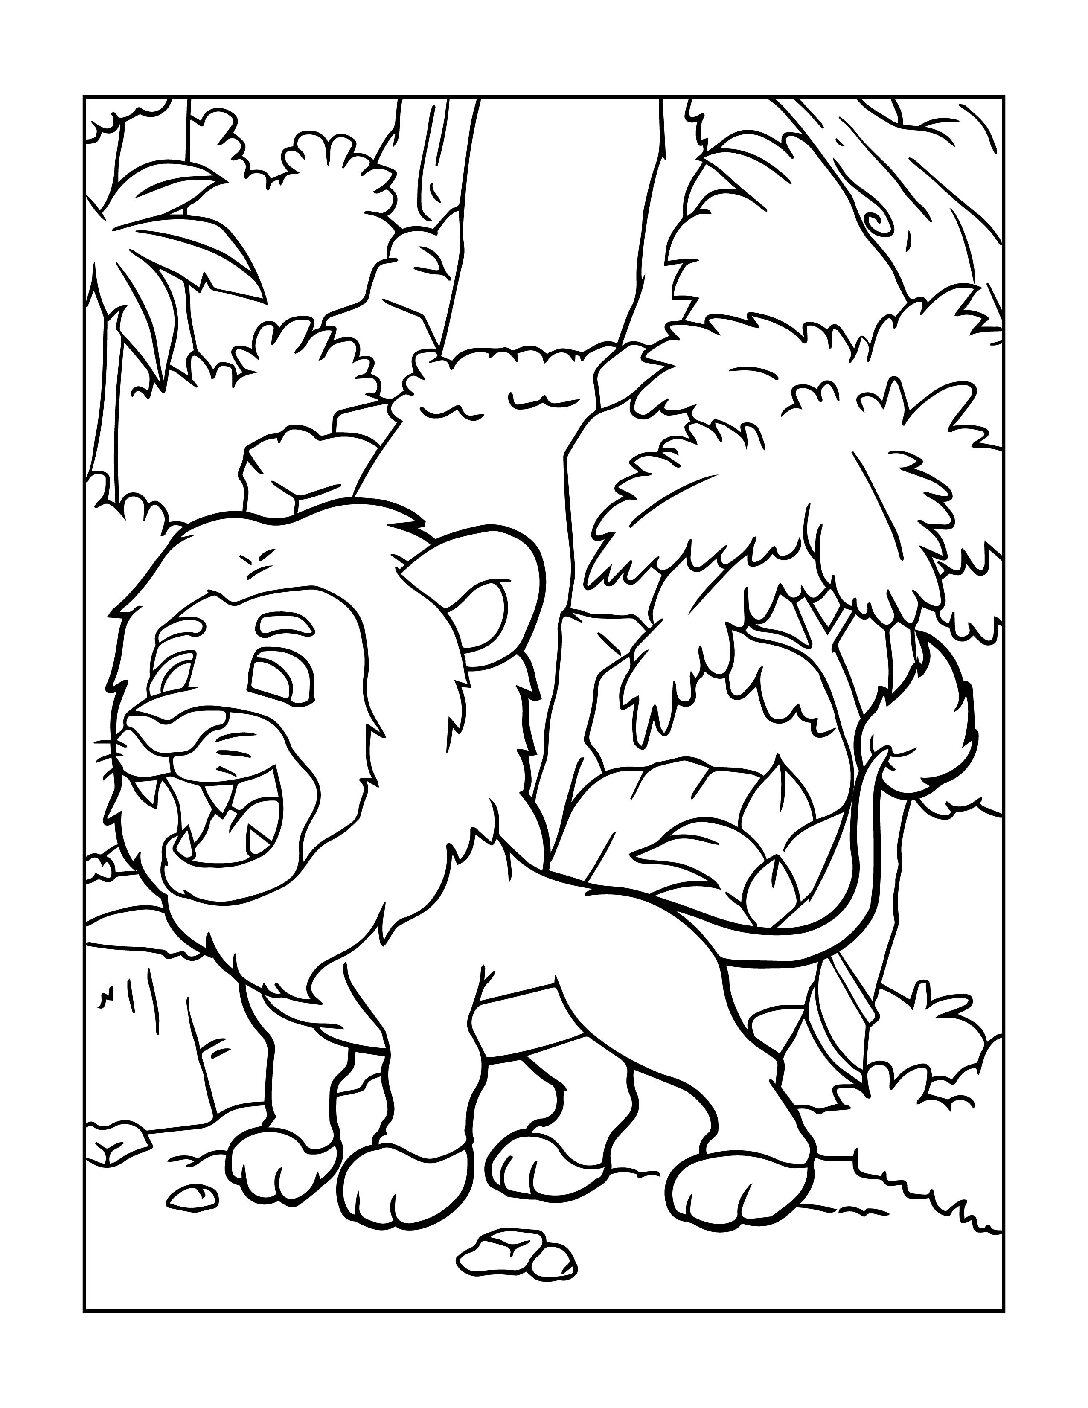 Coloring-Pages-Zoo-Animals-4-01-1-pdf Free Printable  Zoo Animals Colouring Pages